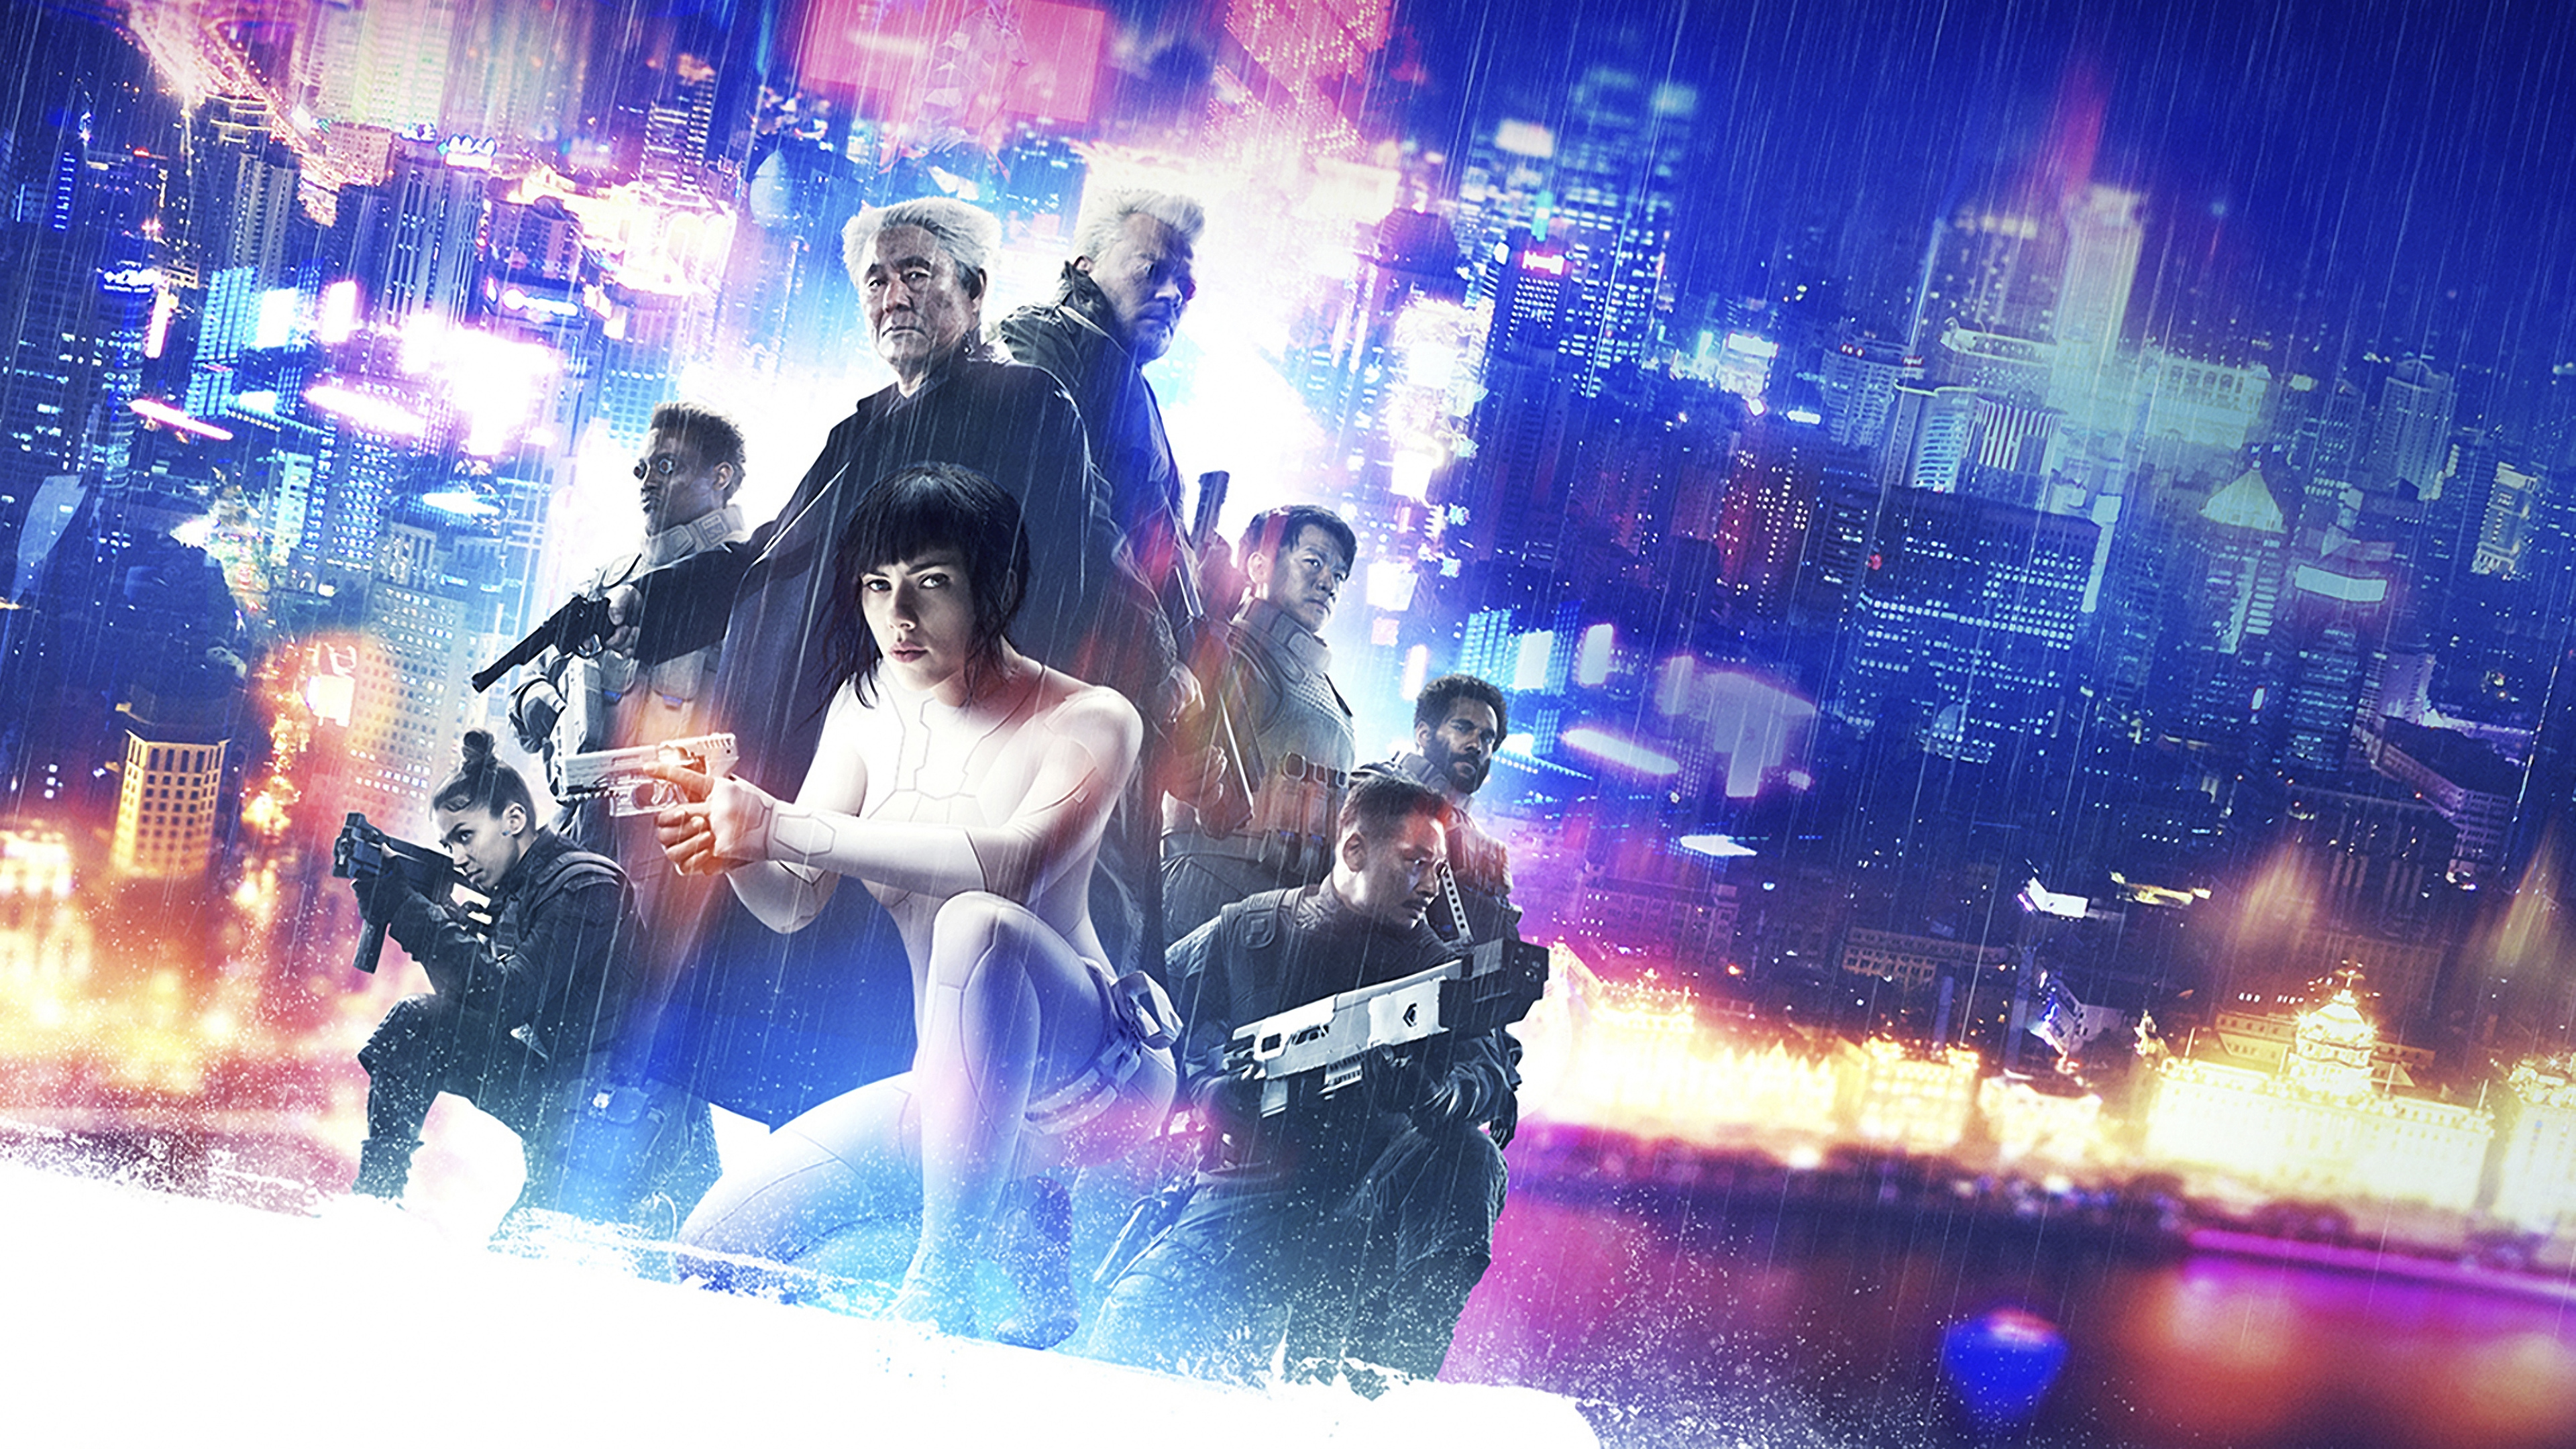 ghost in the shell 4k poster 1555208789 - Ghost In The Shell 4k Poster - poster wallpapers, movies wallpapers, hd-wallpapers, ghost in the shell wallpapers, 4k-wallpapers